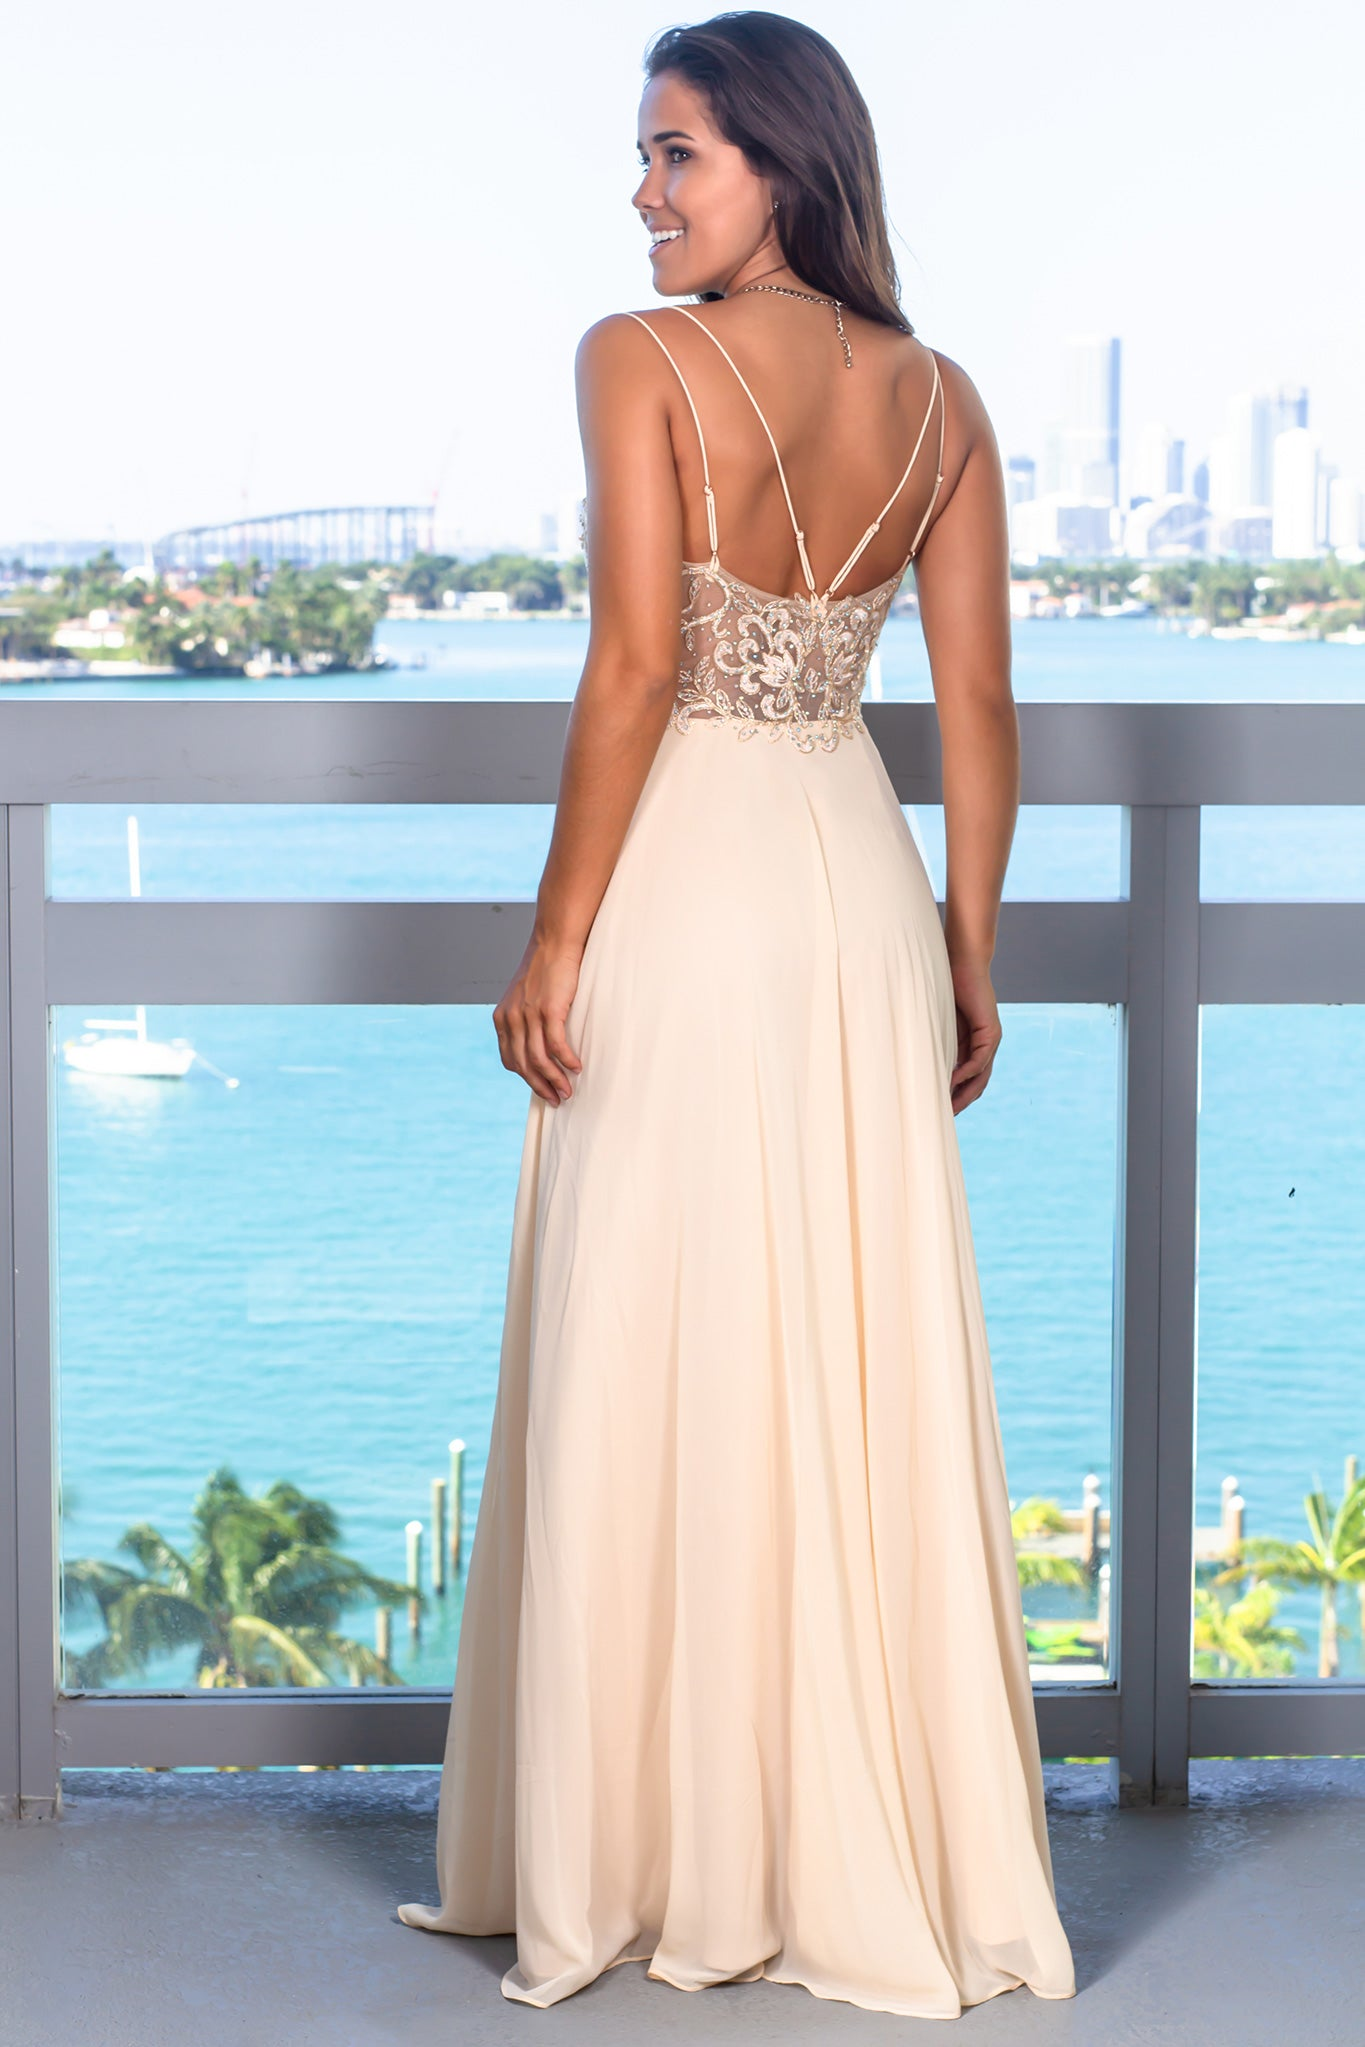 Sand Maxi Dress with Gold Details